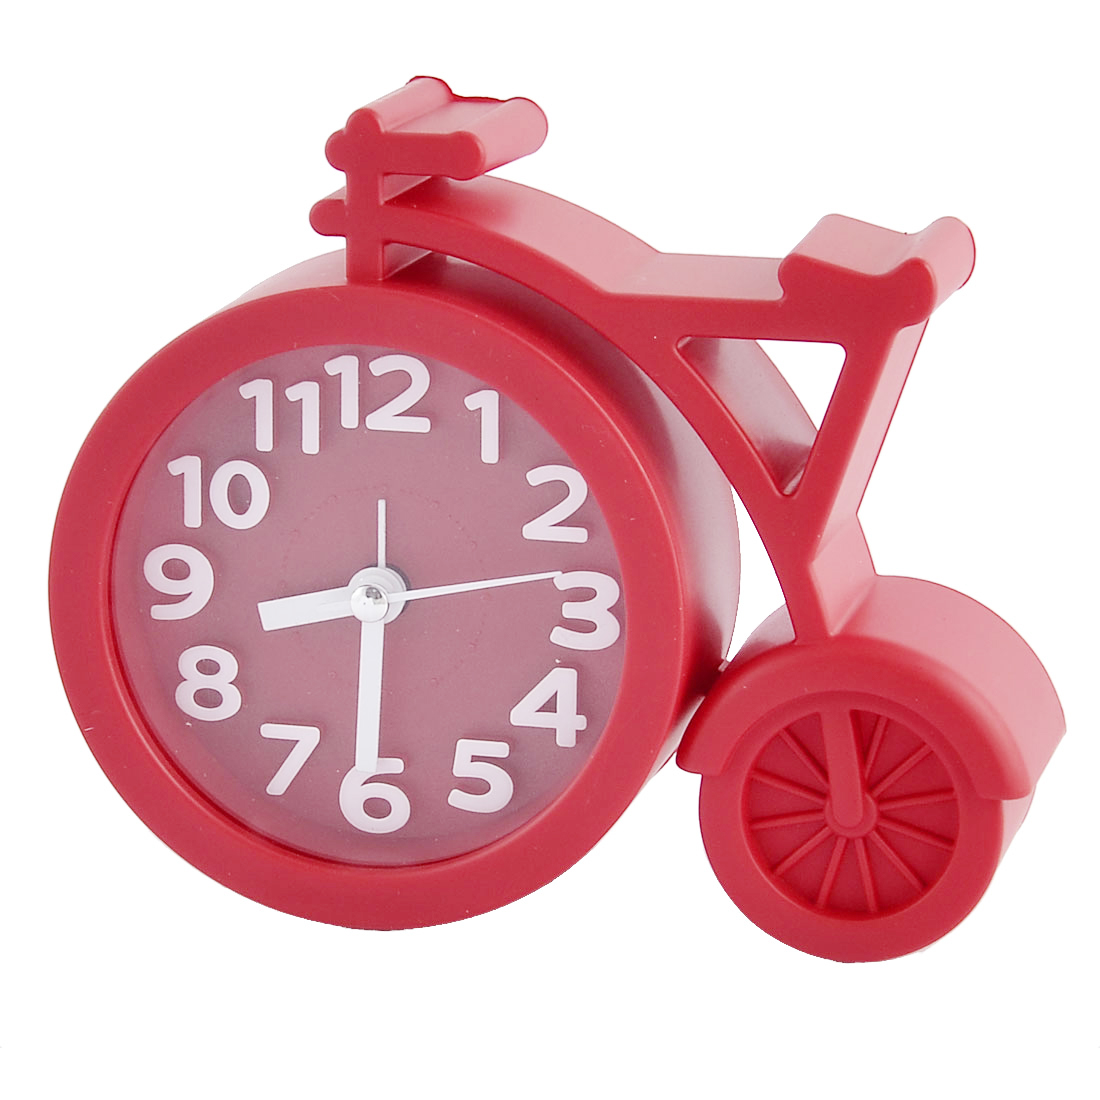 Household Office Desktop Plastic Bike Shaped Silent Battery Powered Arabic Number Alarm Clock Red